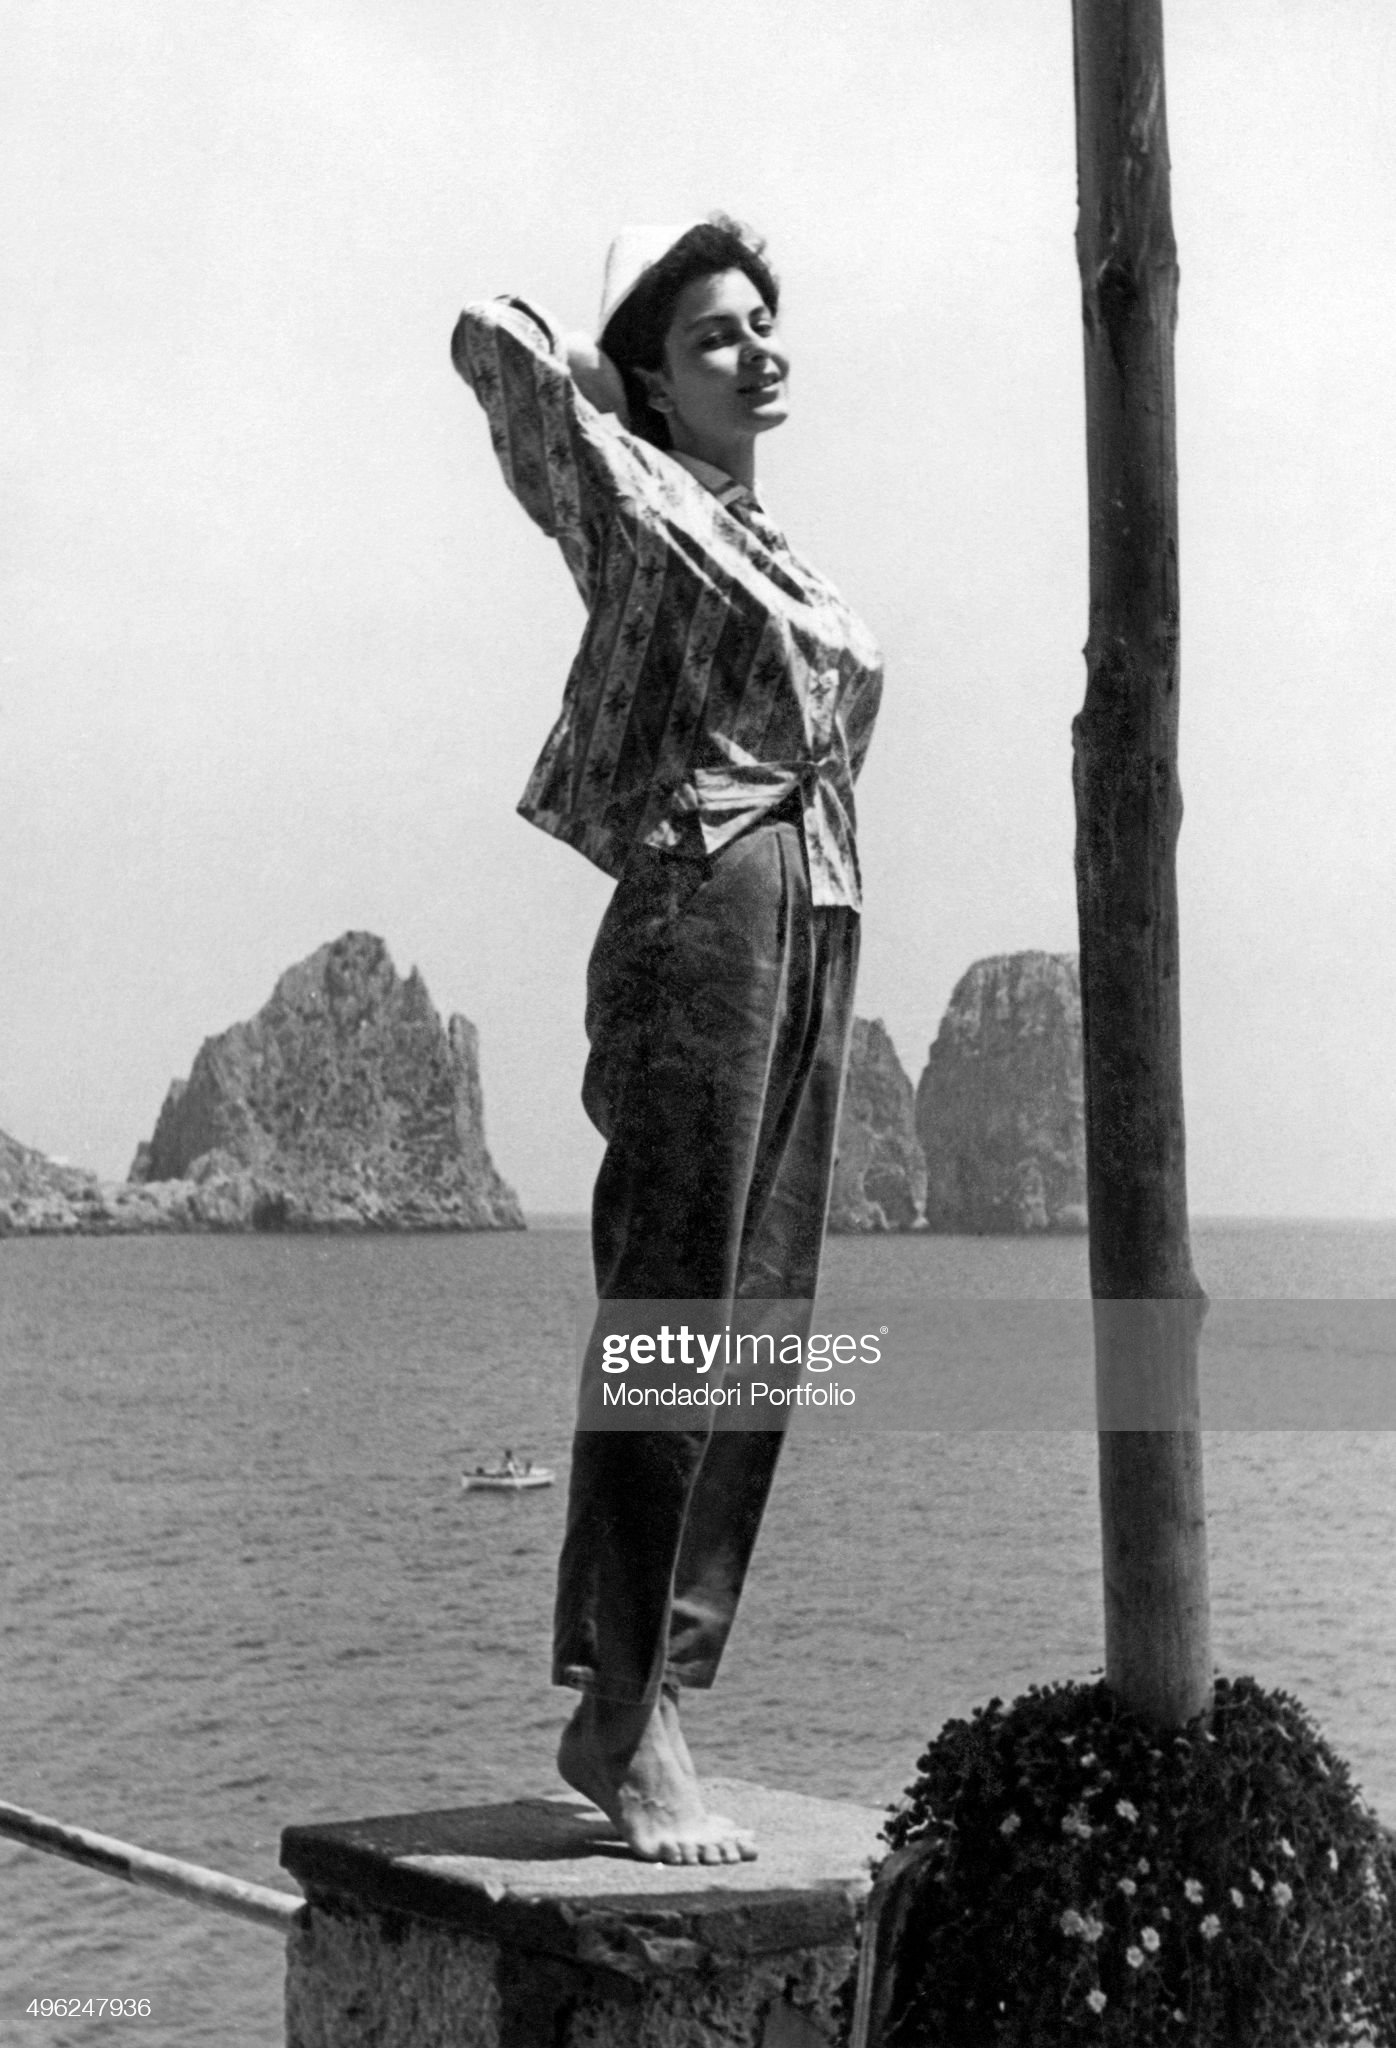 https://media.gettyimages.com/photos/girl-posing-on-a-little-wall-behind-her-the-capri-faraglioni-capri-picture-id496247936?s=2048x2048